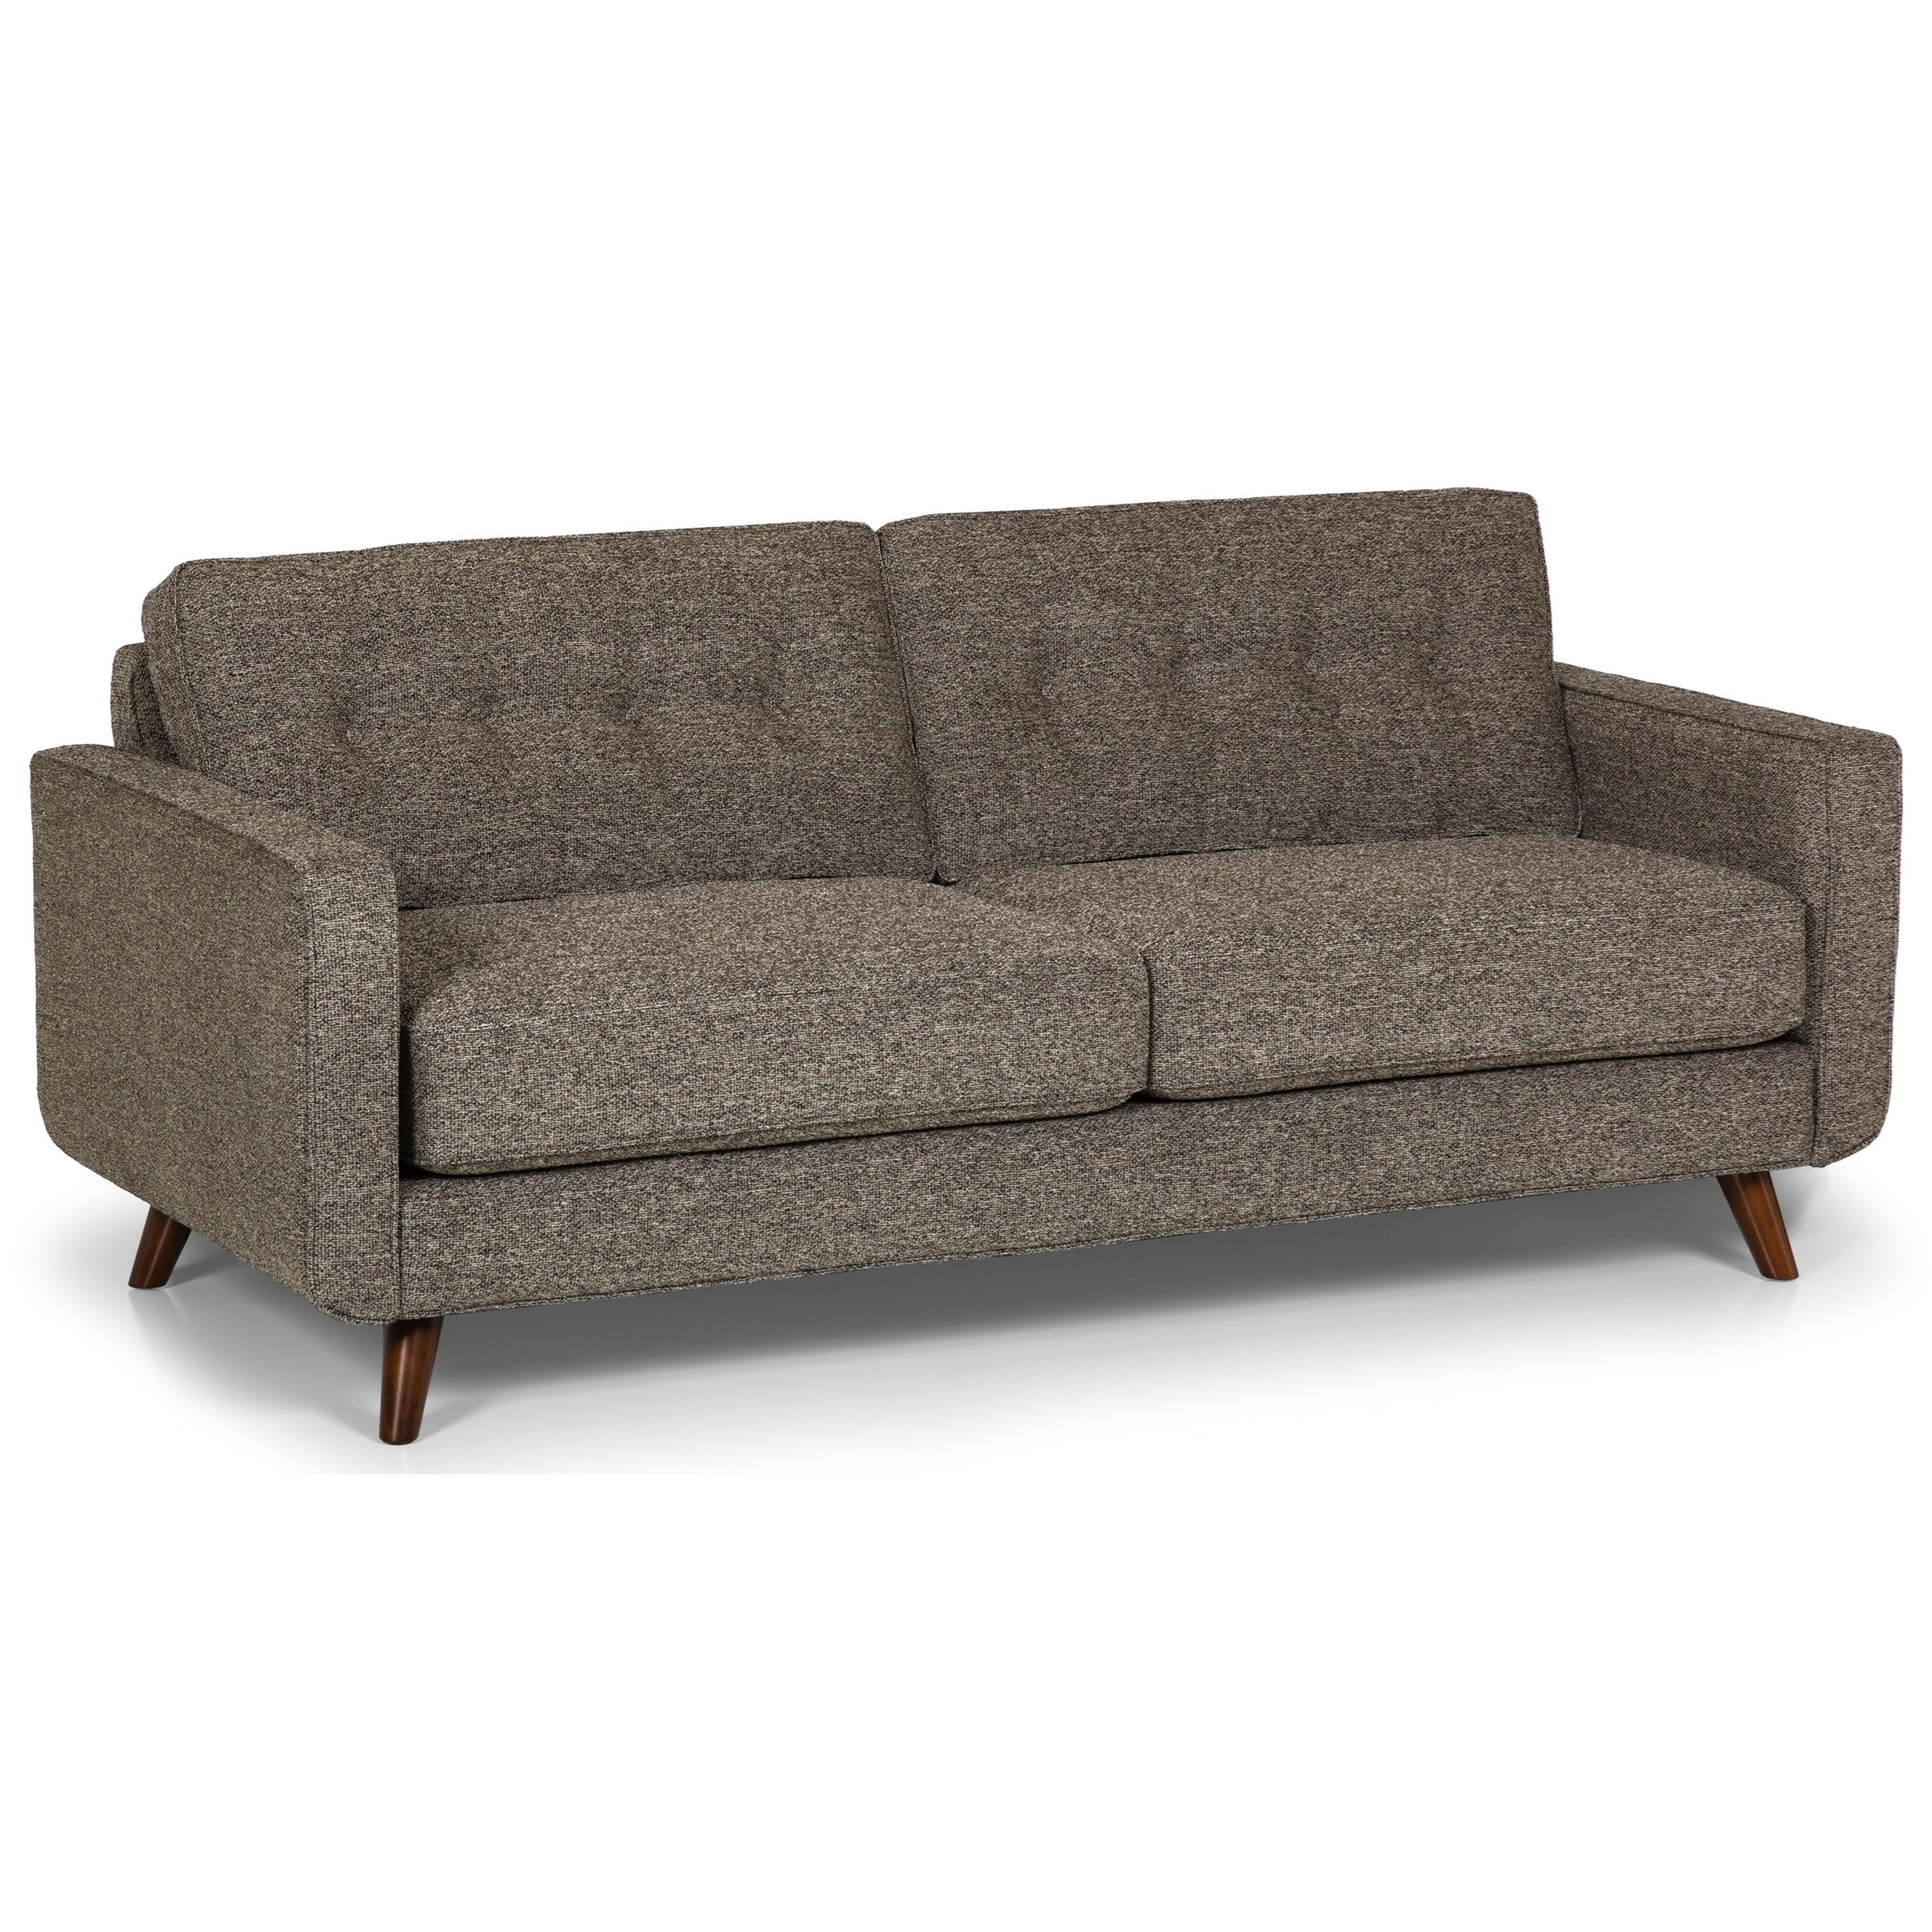 427 Sofa by Stanton at Wilson's Furniture